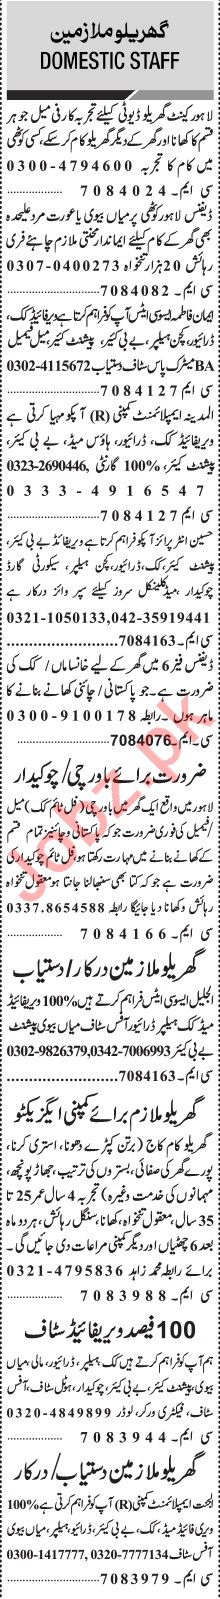 Jang Sunday Classified Ads 12th July 2020 for Domestic Staff